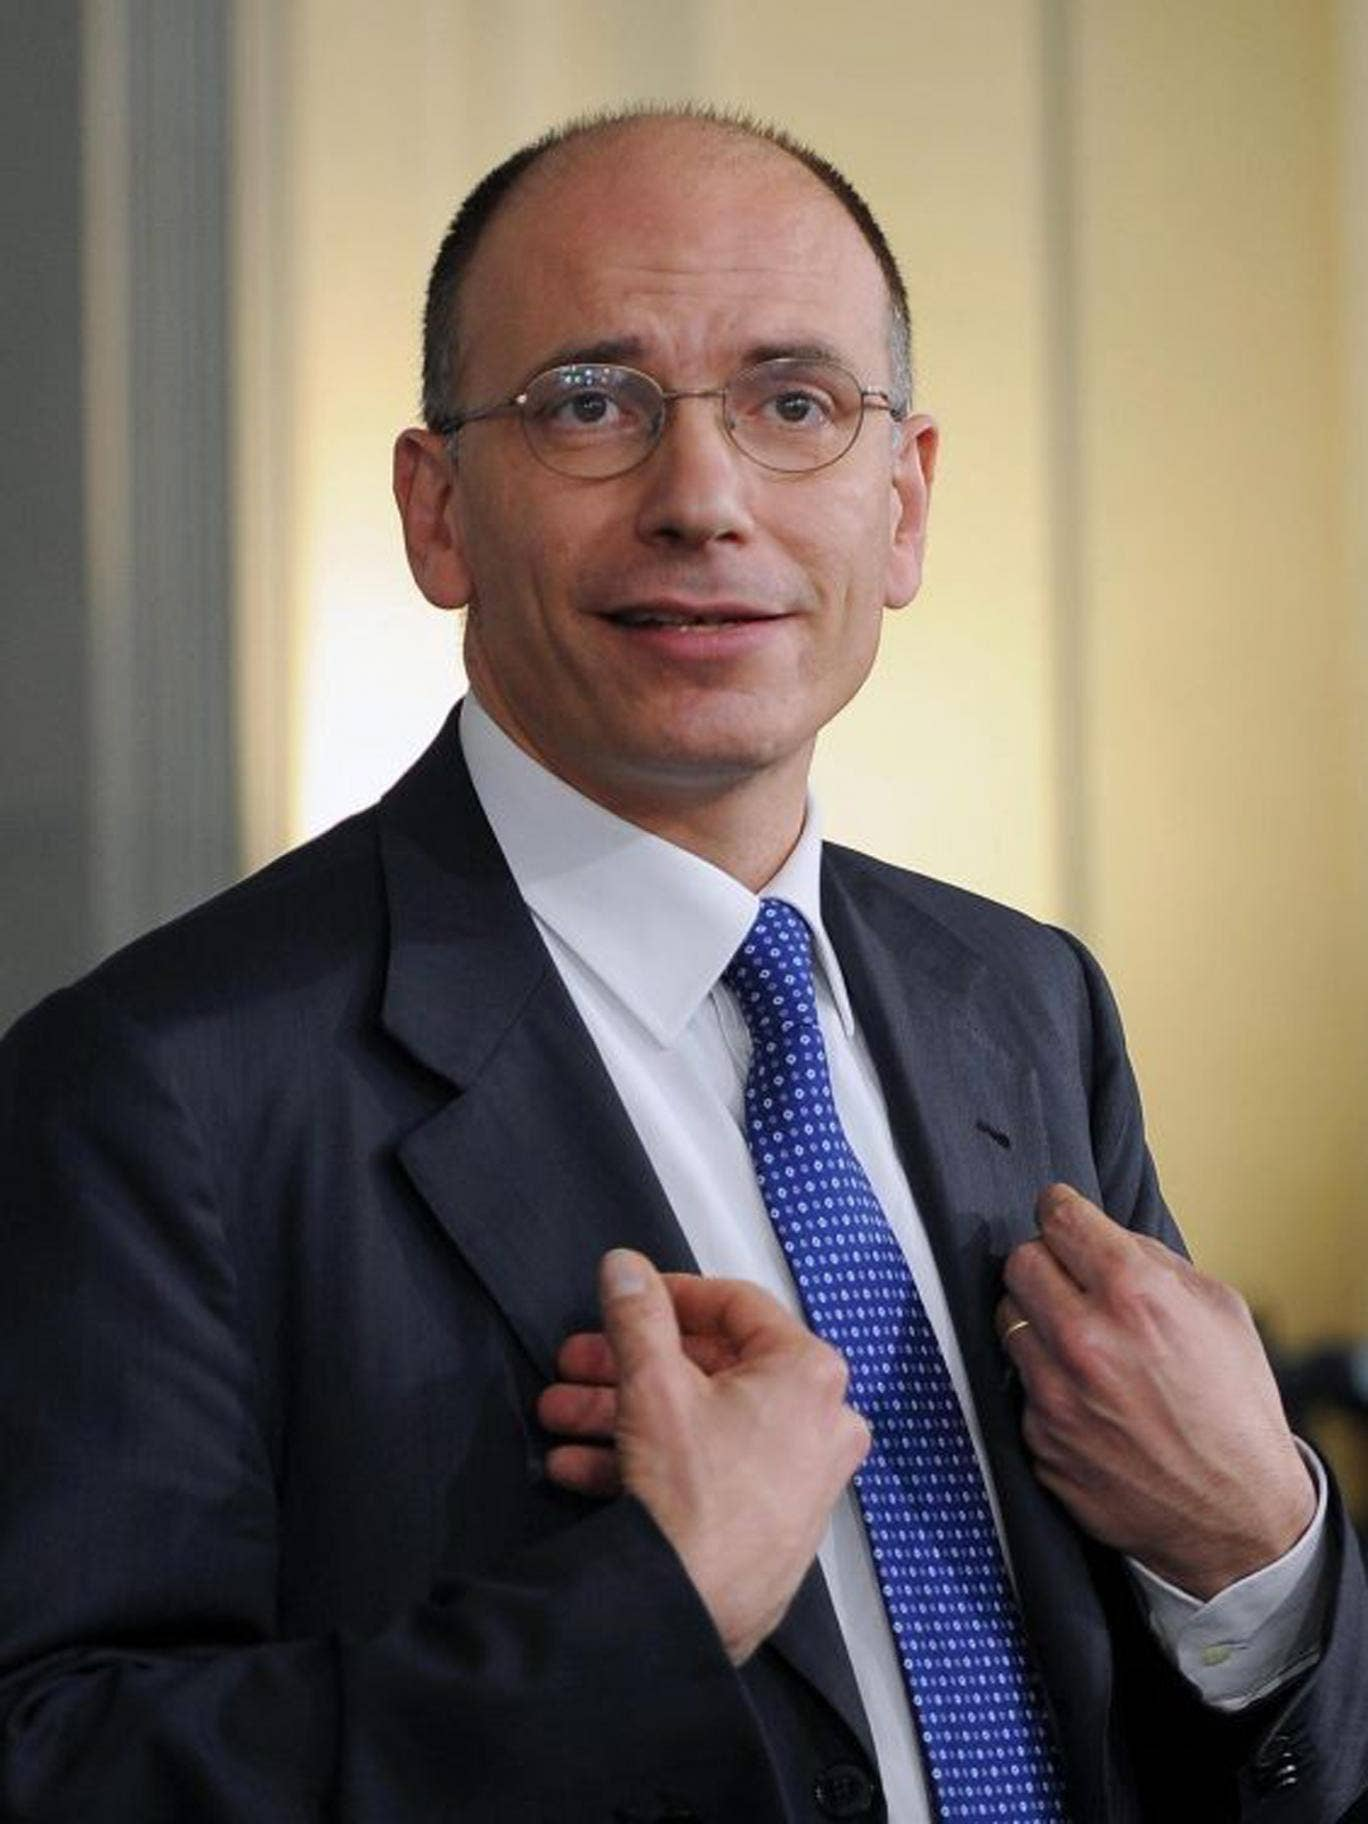 Enrico Letta, the former deputy leader of the centre-left Democratic party, is to form new government in Italy